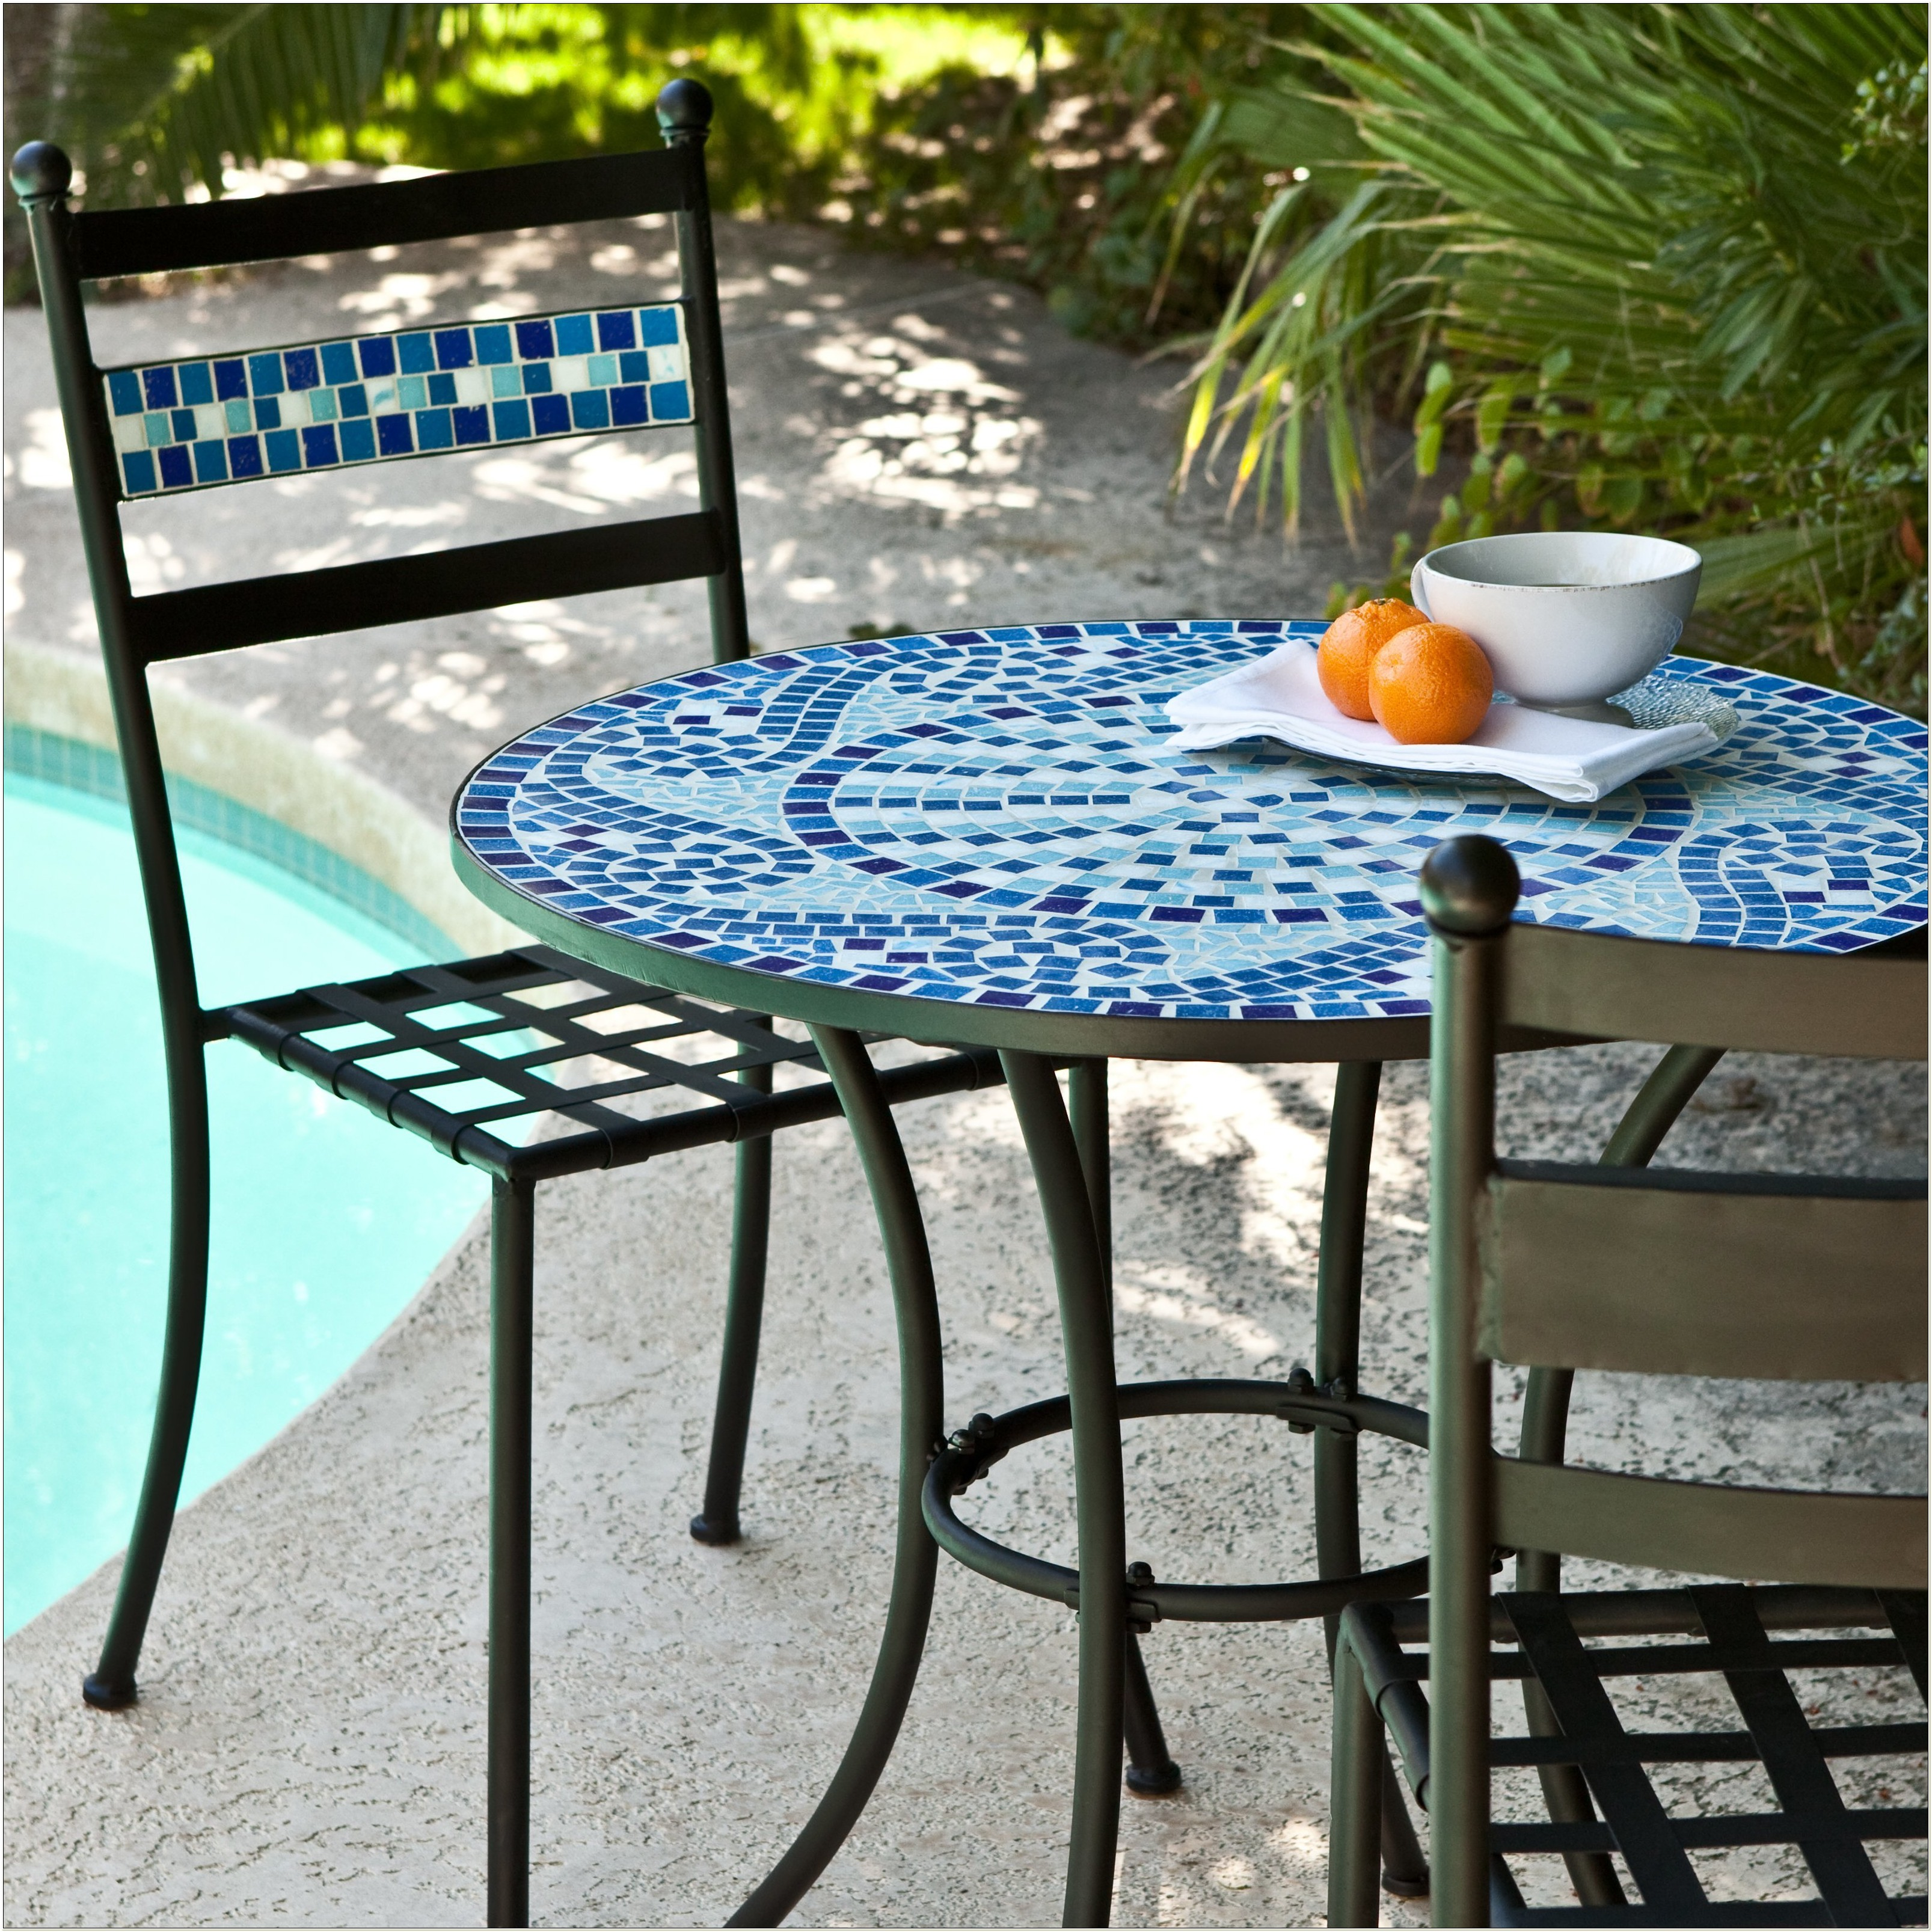 Mosaic Tile Bistro Table And Chairs